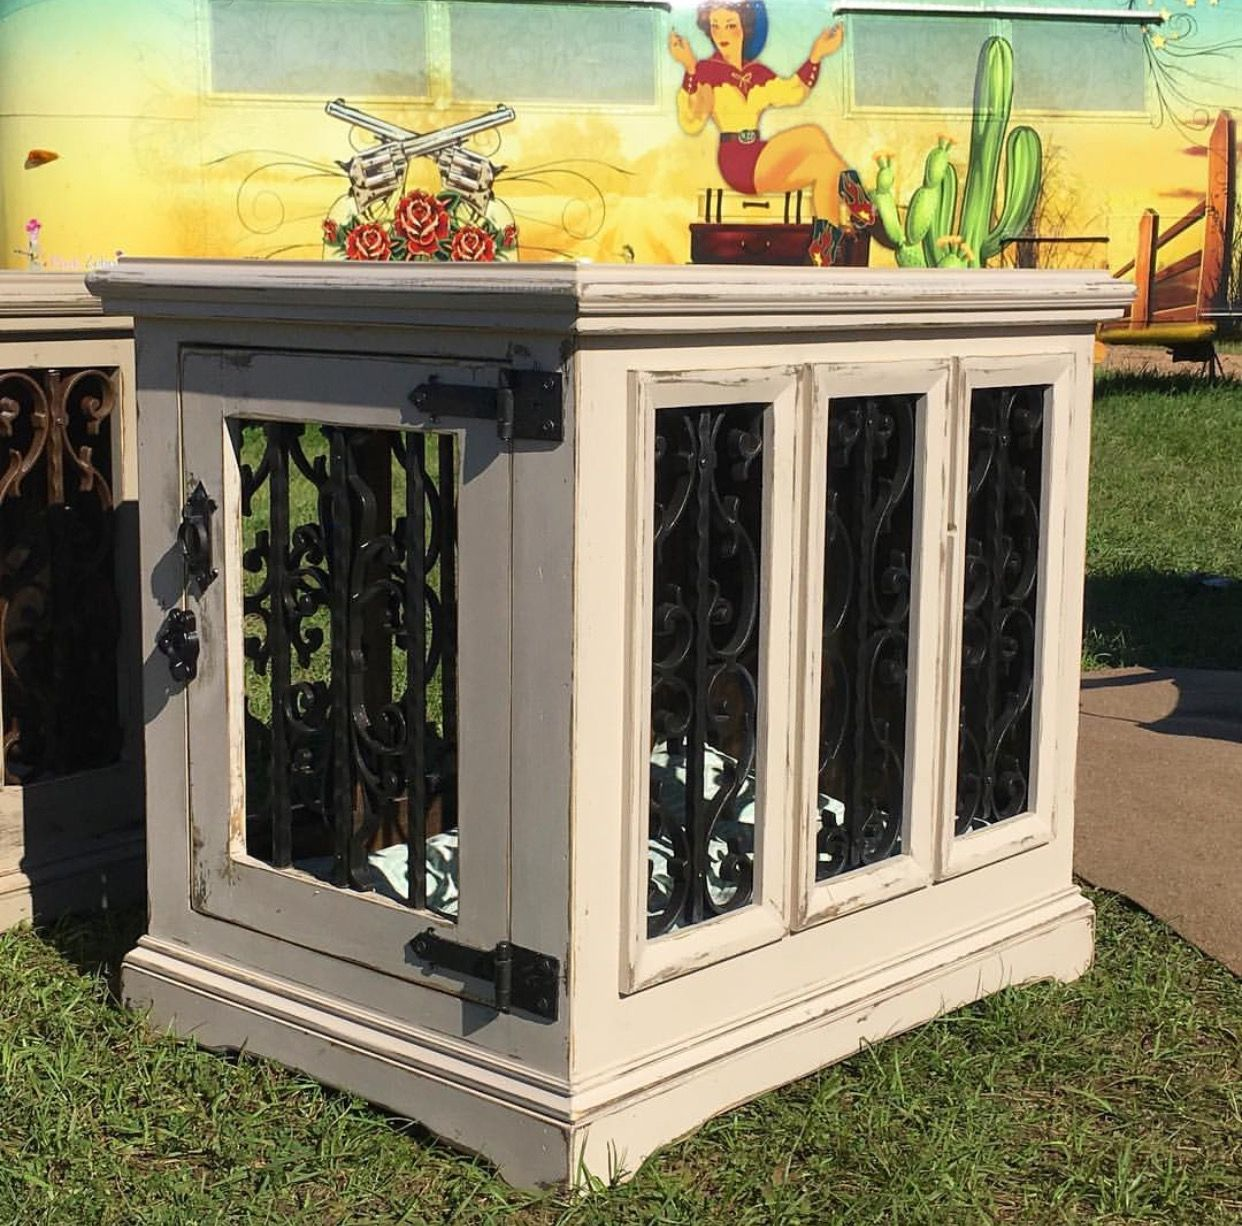 Custom Indoor Dog Kennel By In The House Kennels 545 At Waron Round Top Antique Weekend Located Arbor Antiques Too Tx